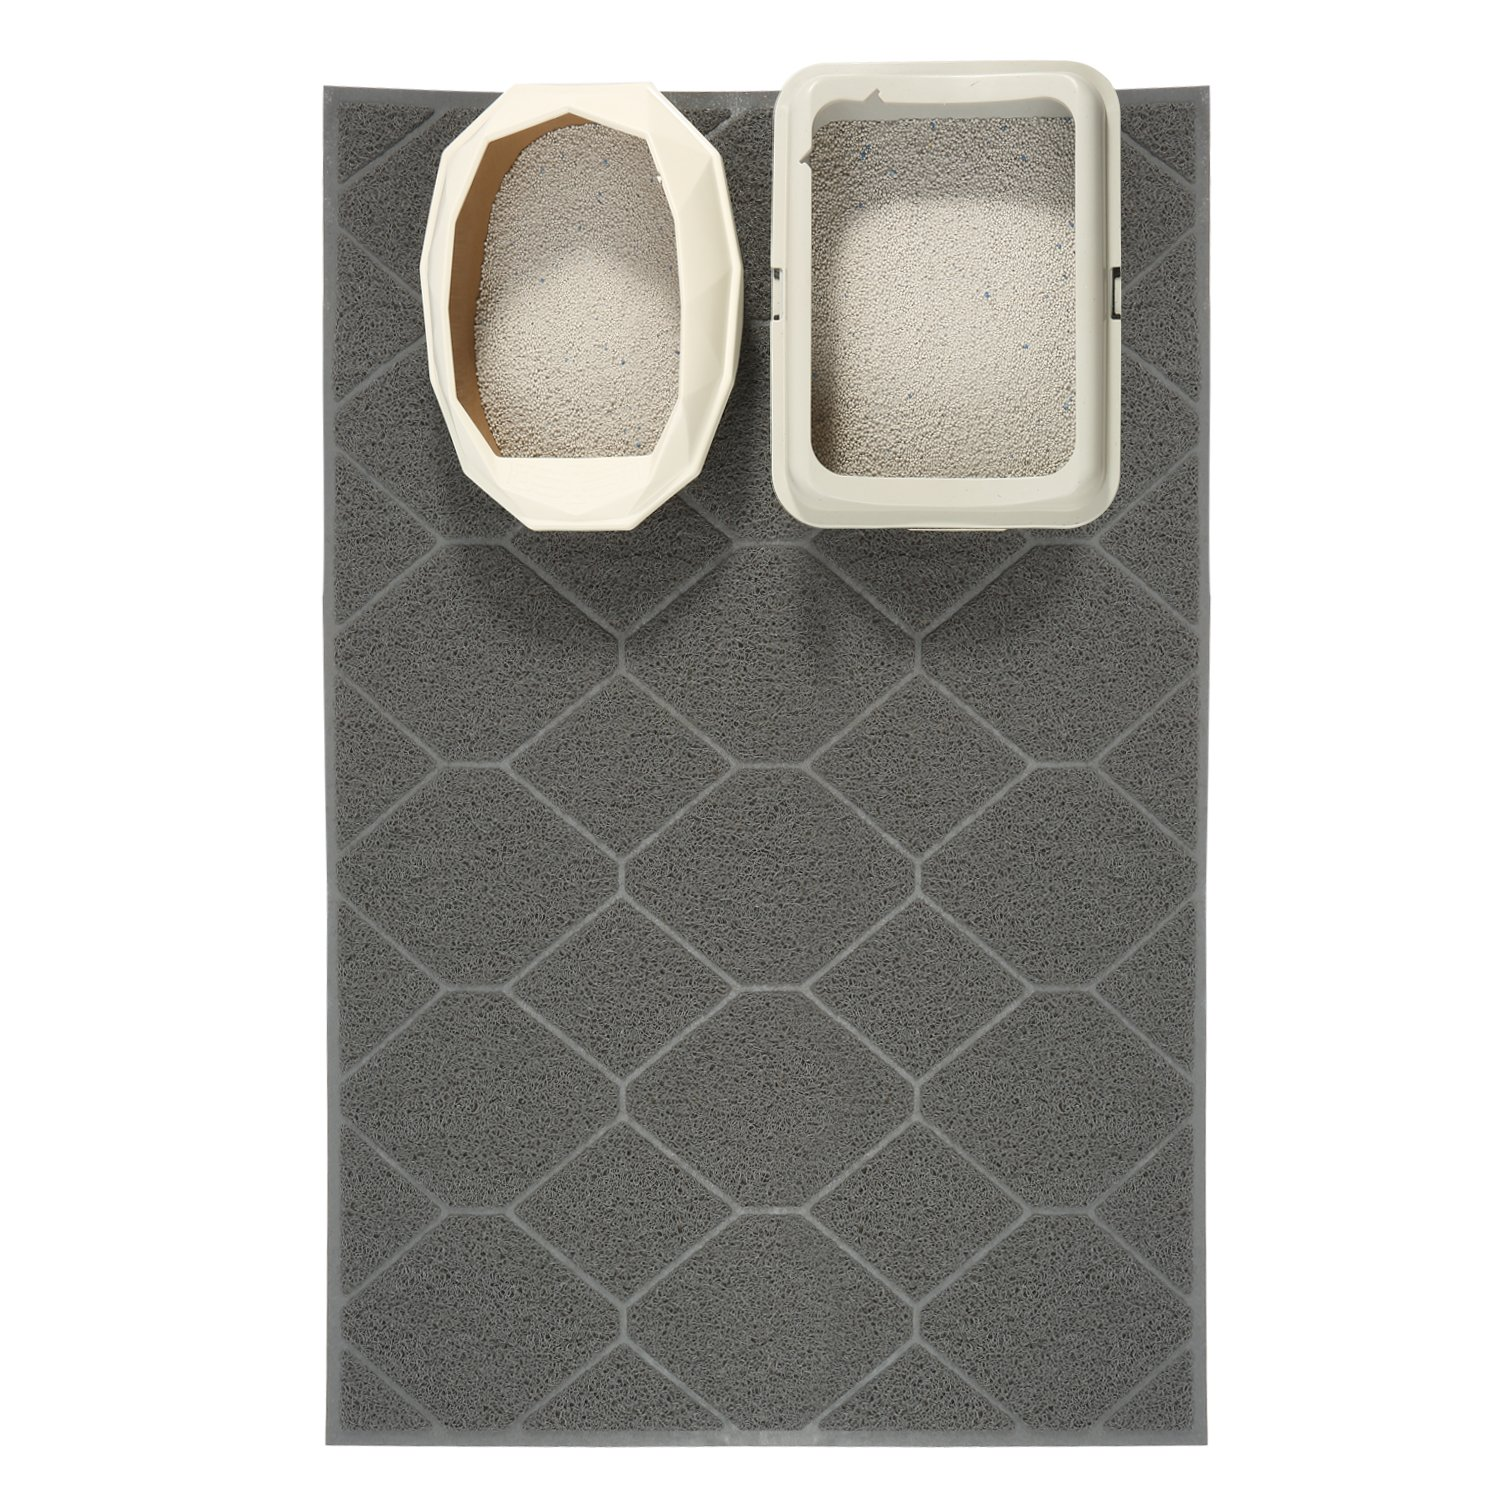 Cosyearn Large Litter Mat 47'' x 36'' Inch Jumbo Large Size Kitty Litter Mat, Easy Clean, Durable,Cat Litter Trapping Mat,Non-Slip Backing, Dirt Catcher, Soft on Paws. (Grey)